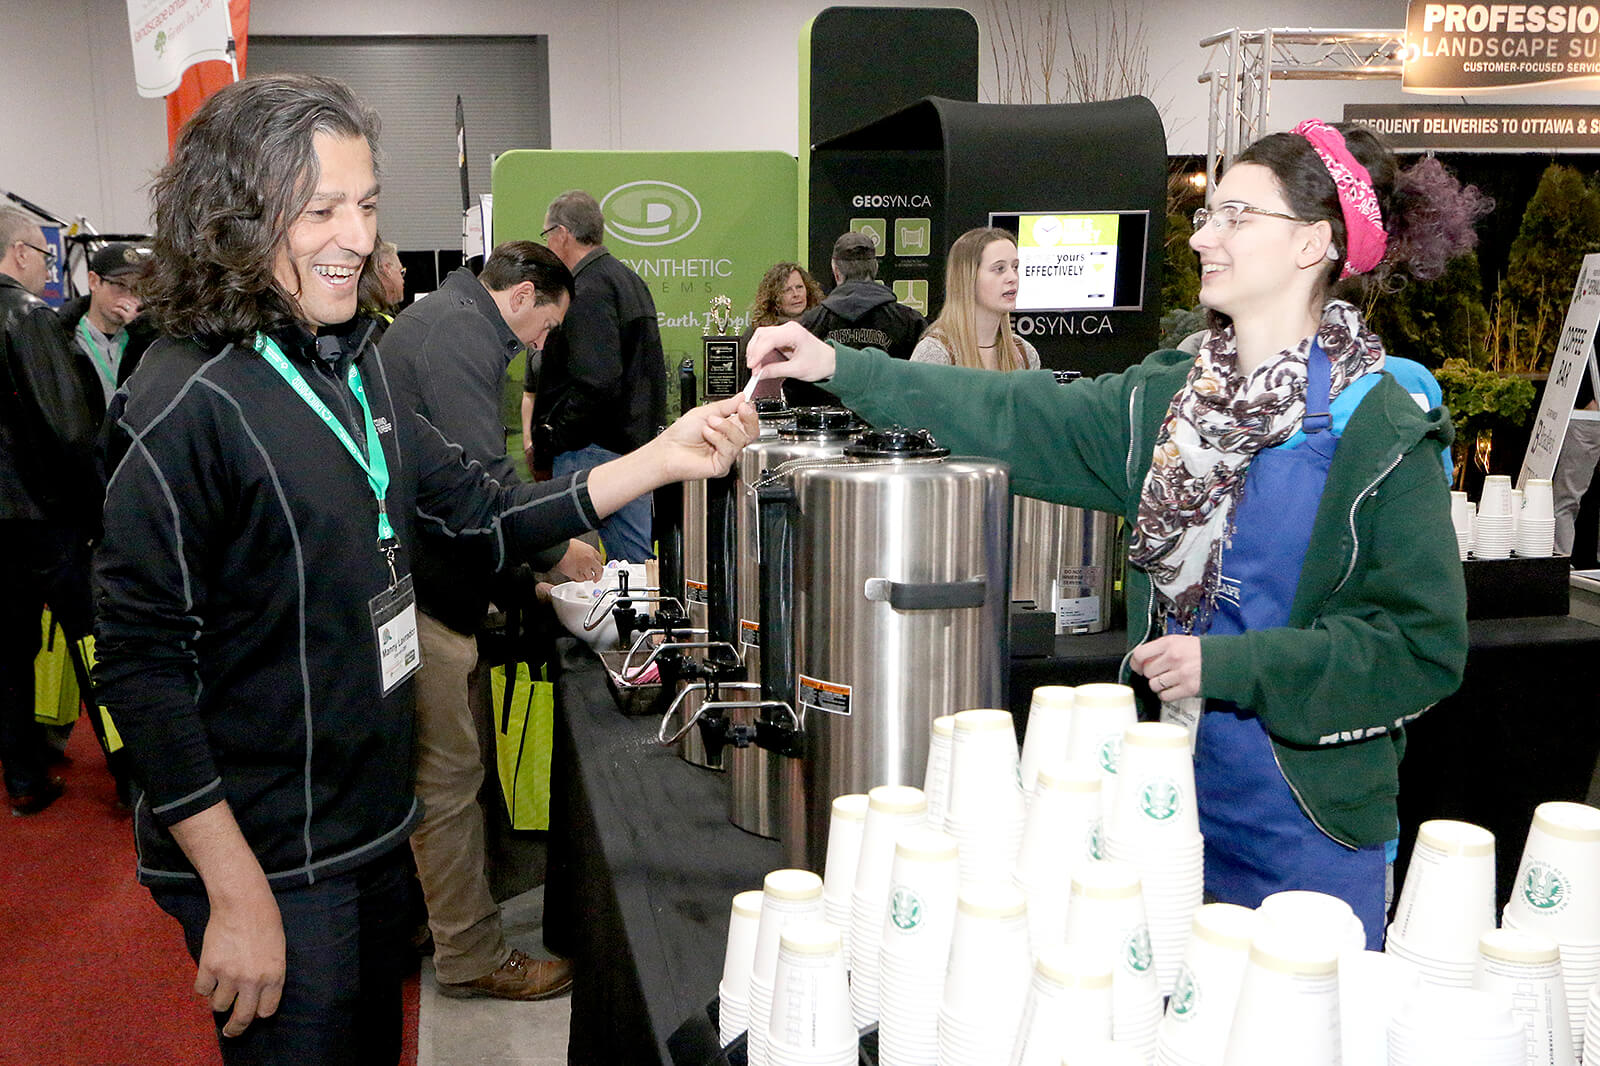 Volunteers greet exhibitors and attendees with a smile at the Coffee Bar on the trade show floor.